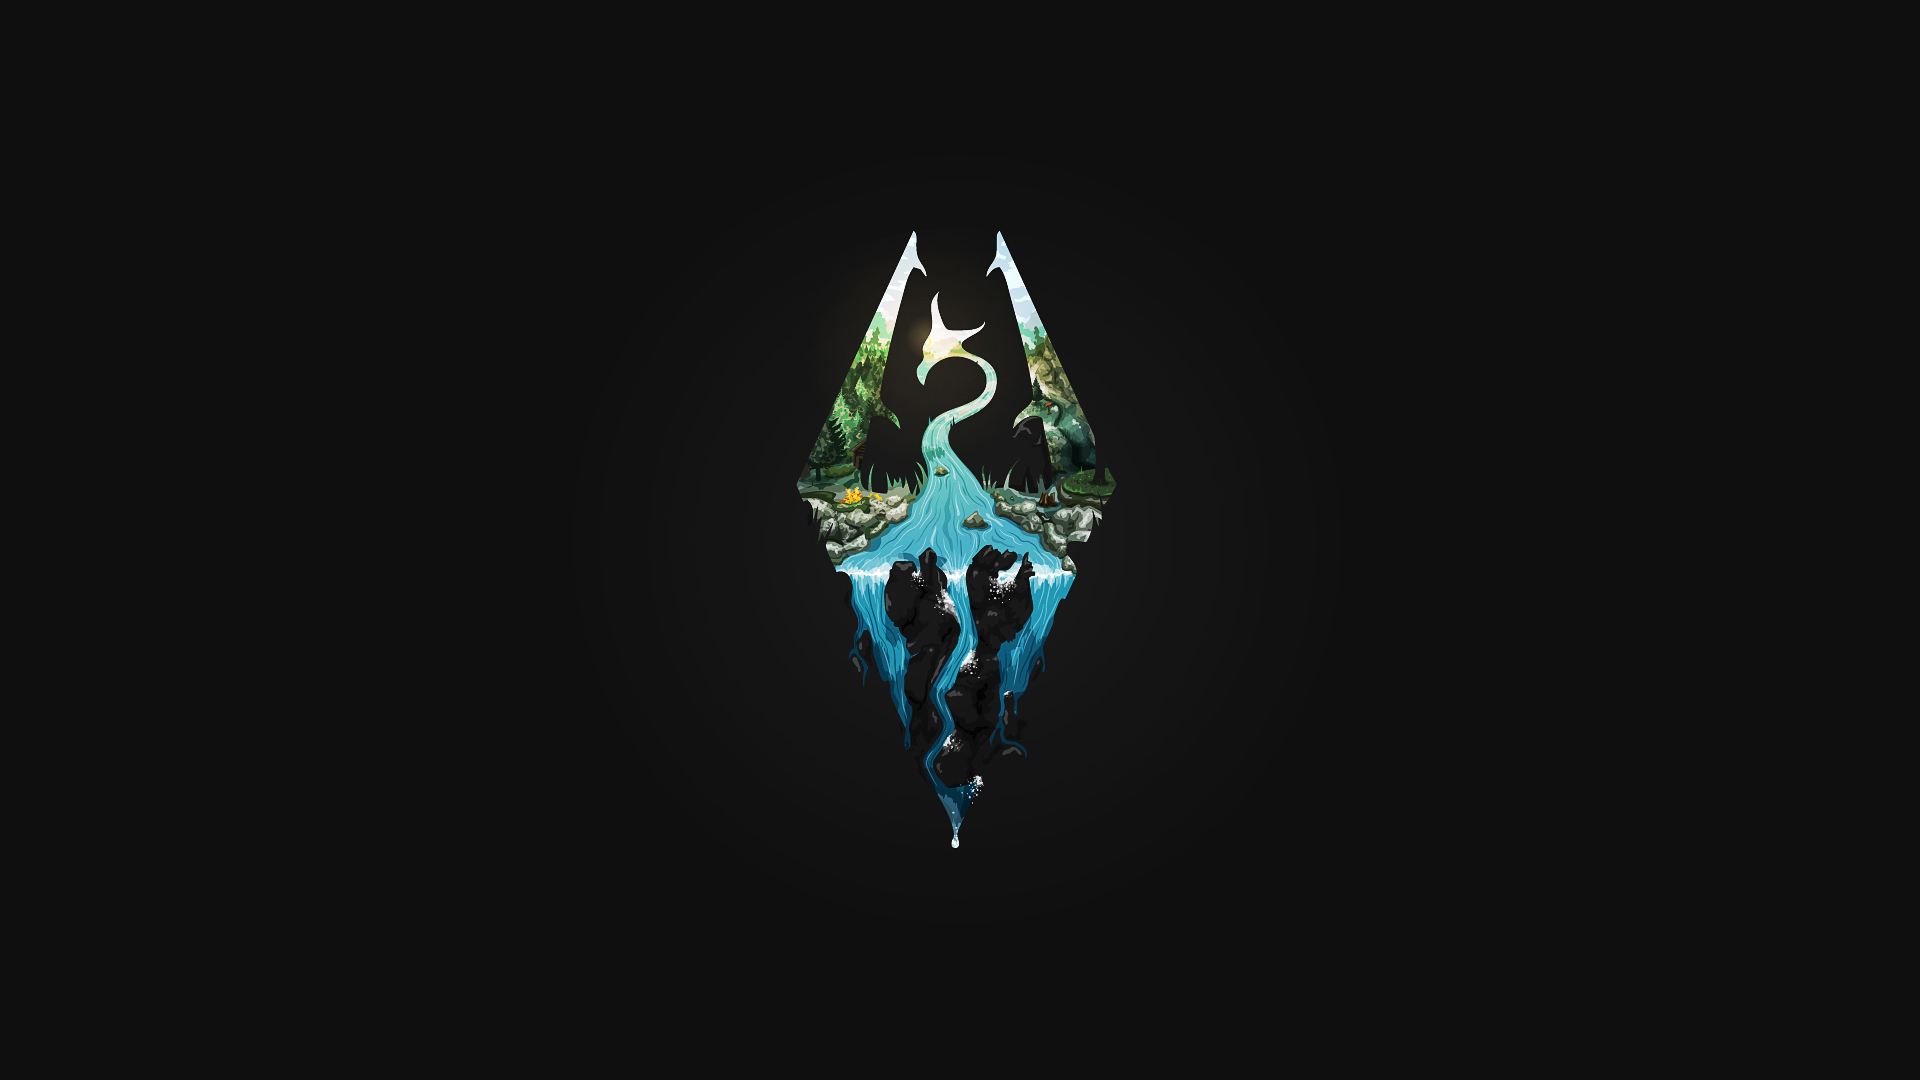 Wallpaper The Elder Scrolls V: Skyrim dragon logo